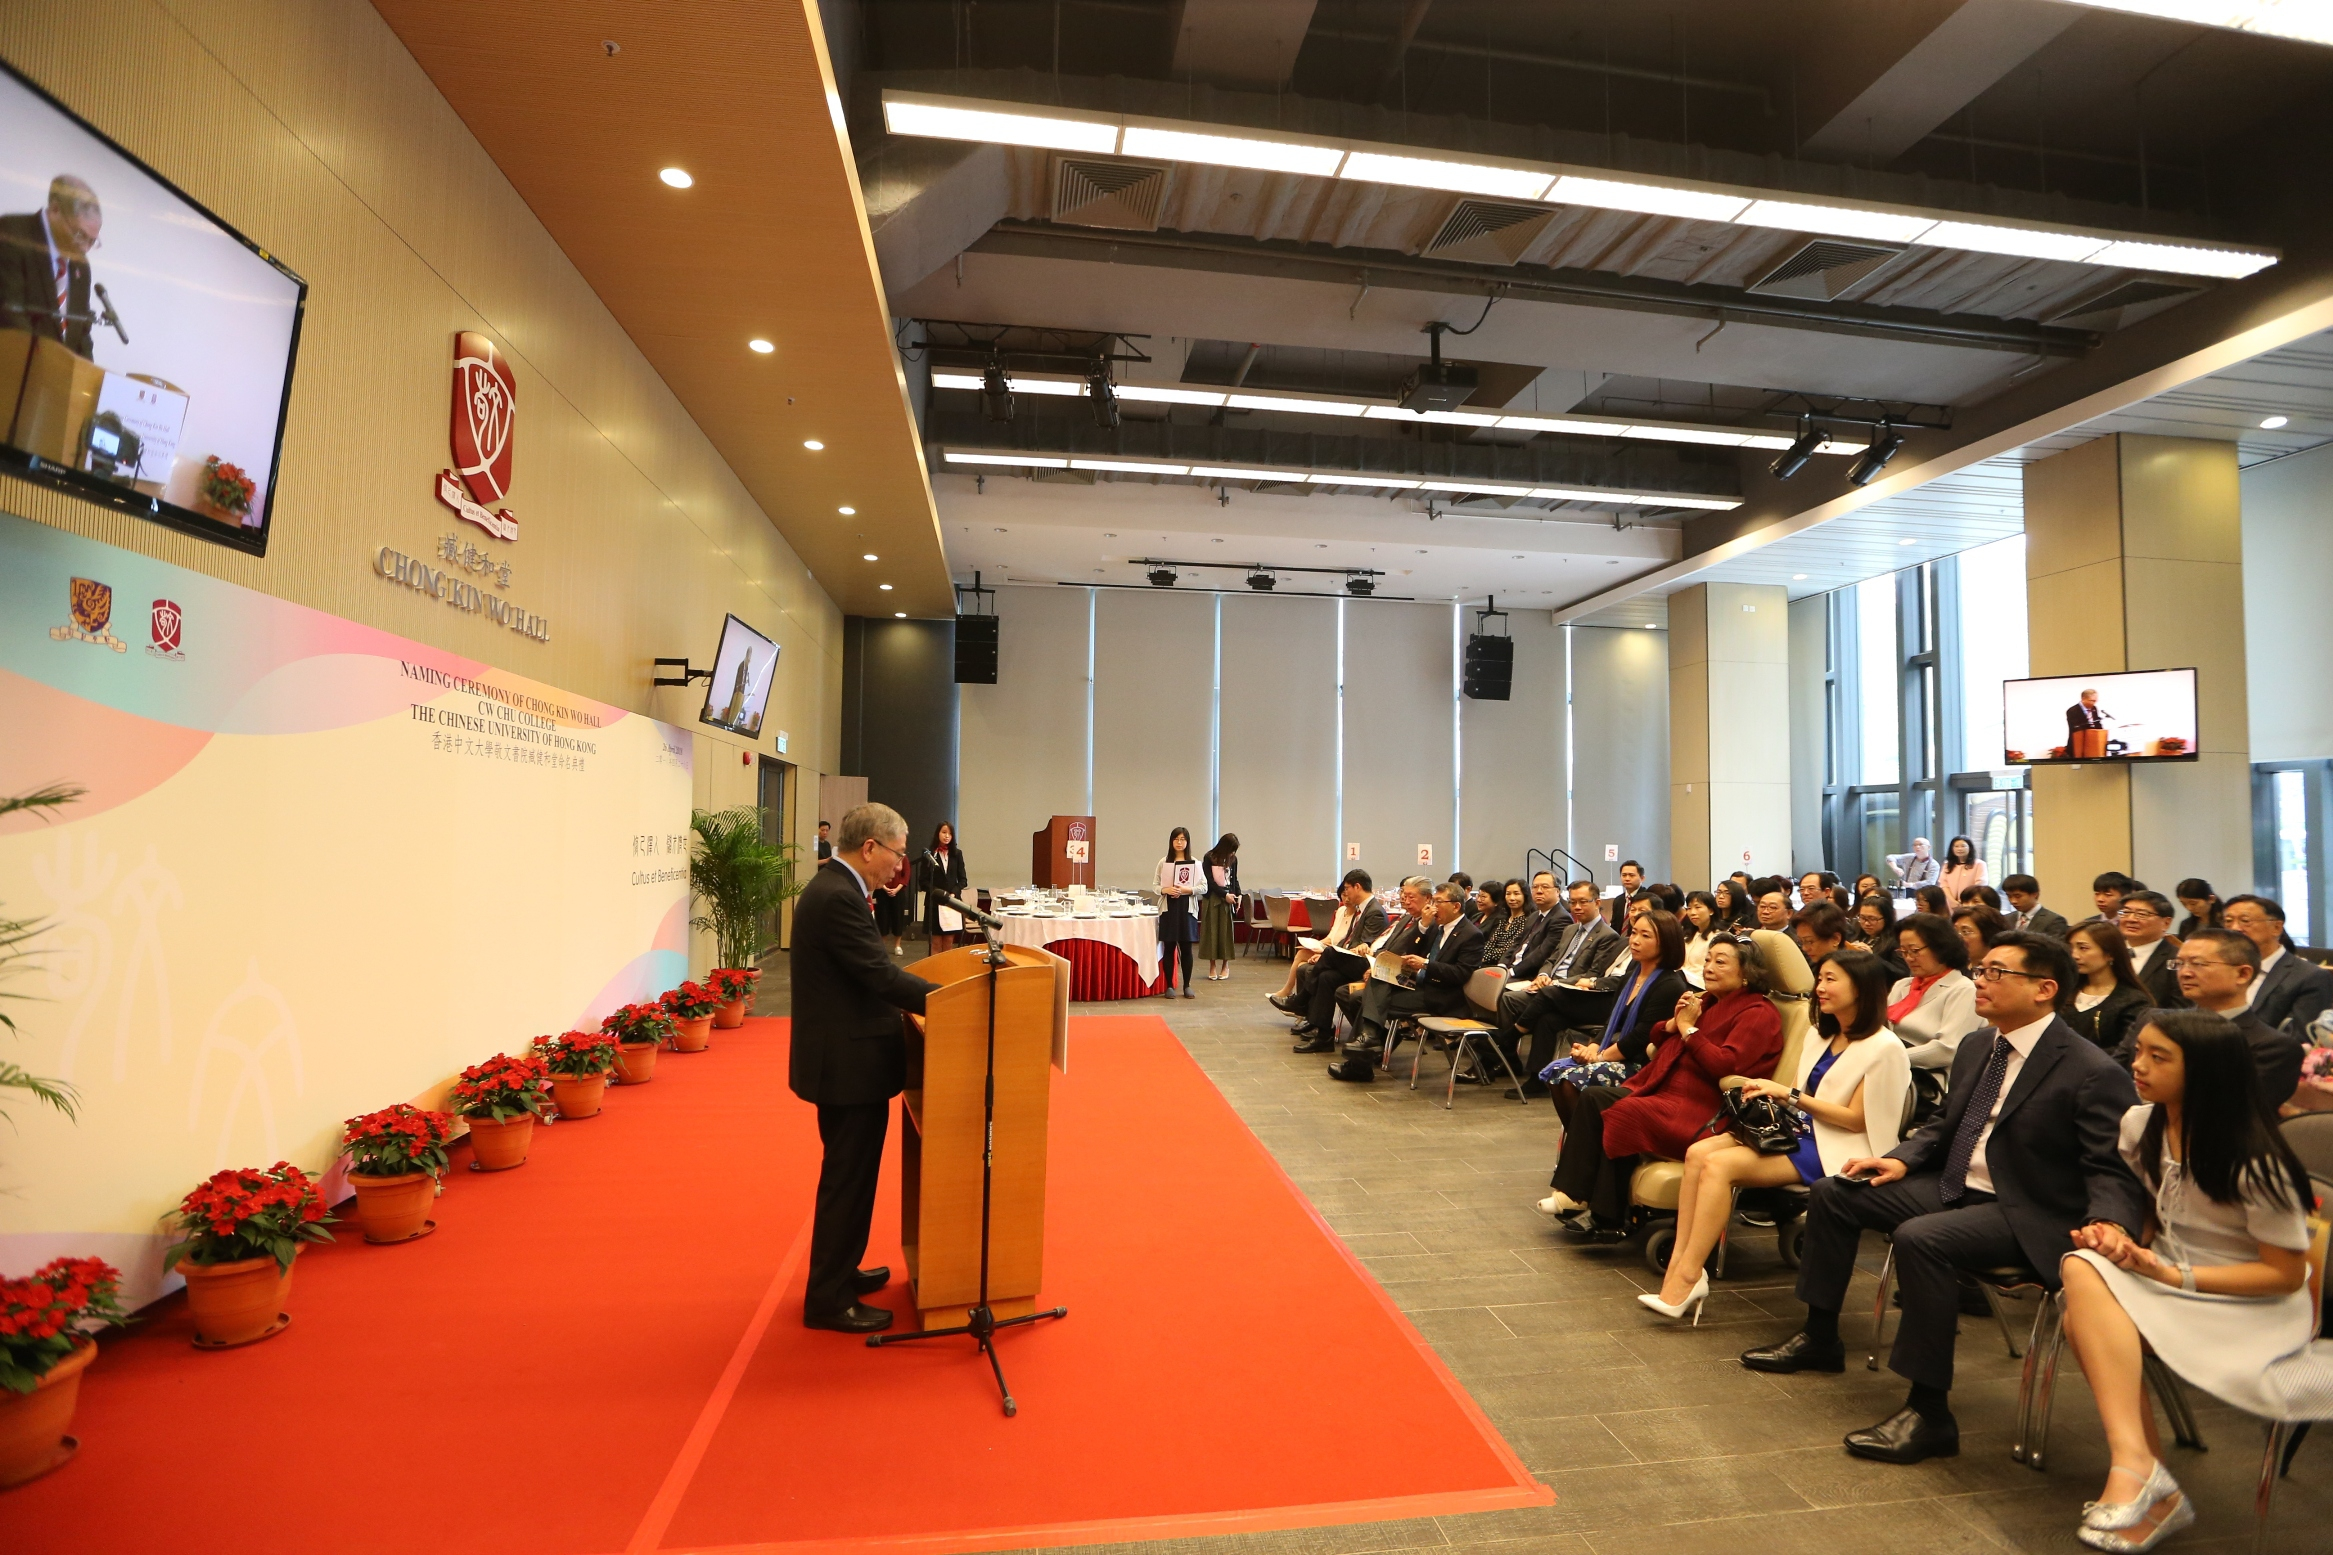 Professor Wai-Yee Chan, Master, CW Chu College, CUHK delivered the welcome remarks at the Naming Ceremony of Chong Kin Wo Hall.